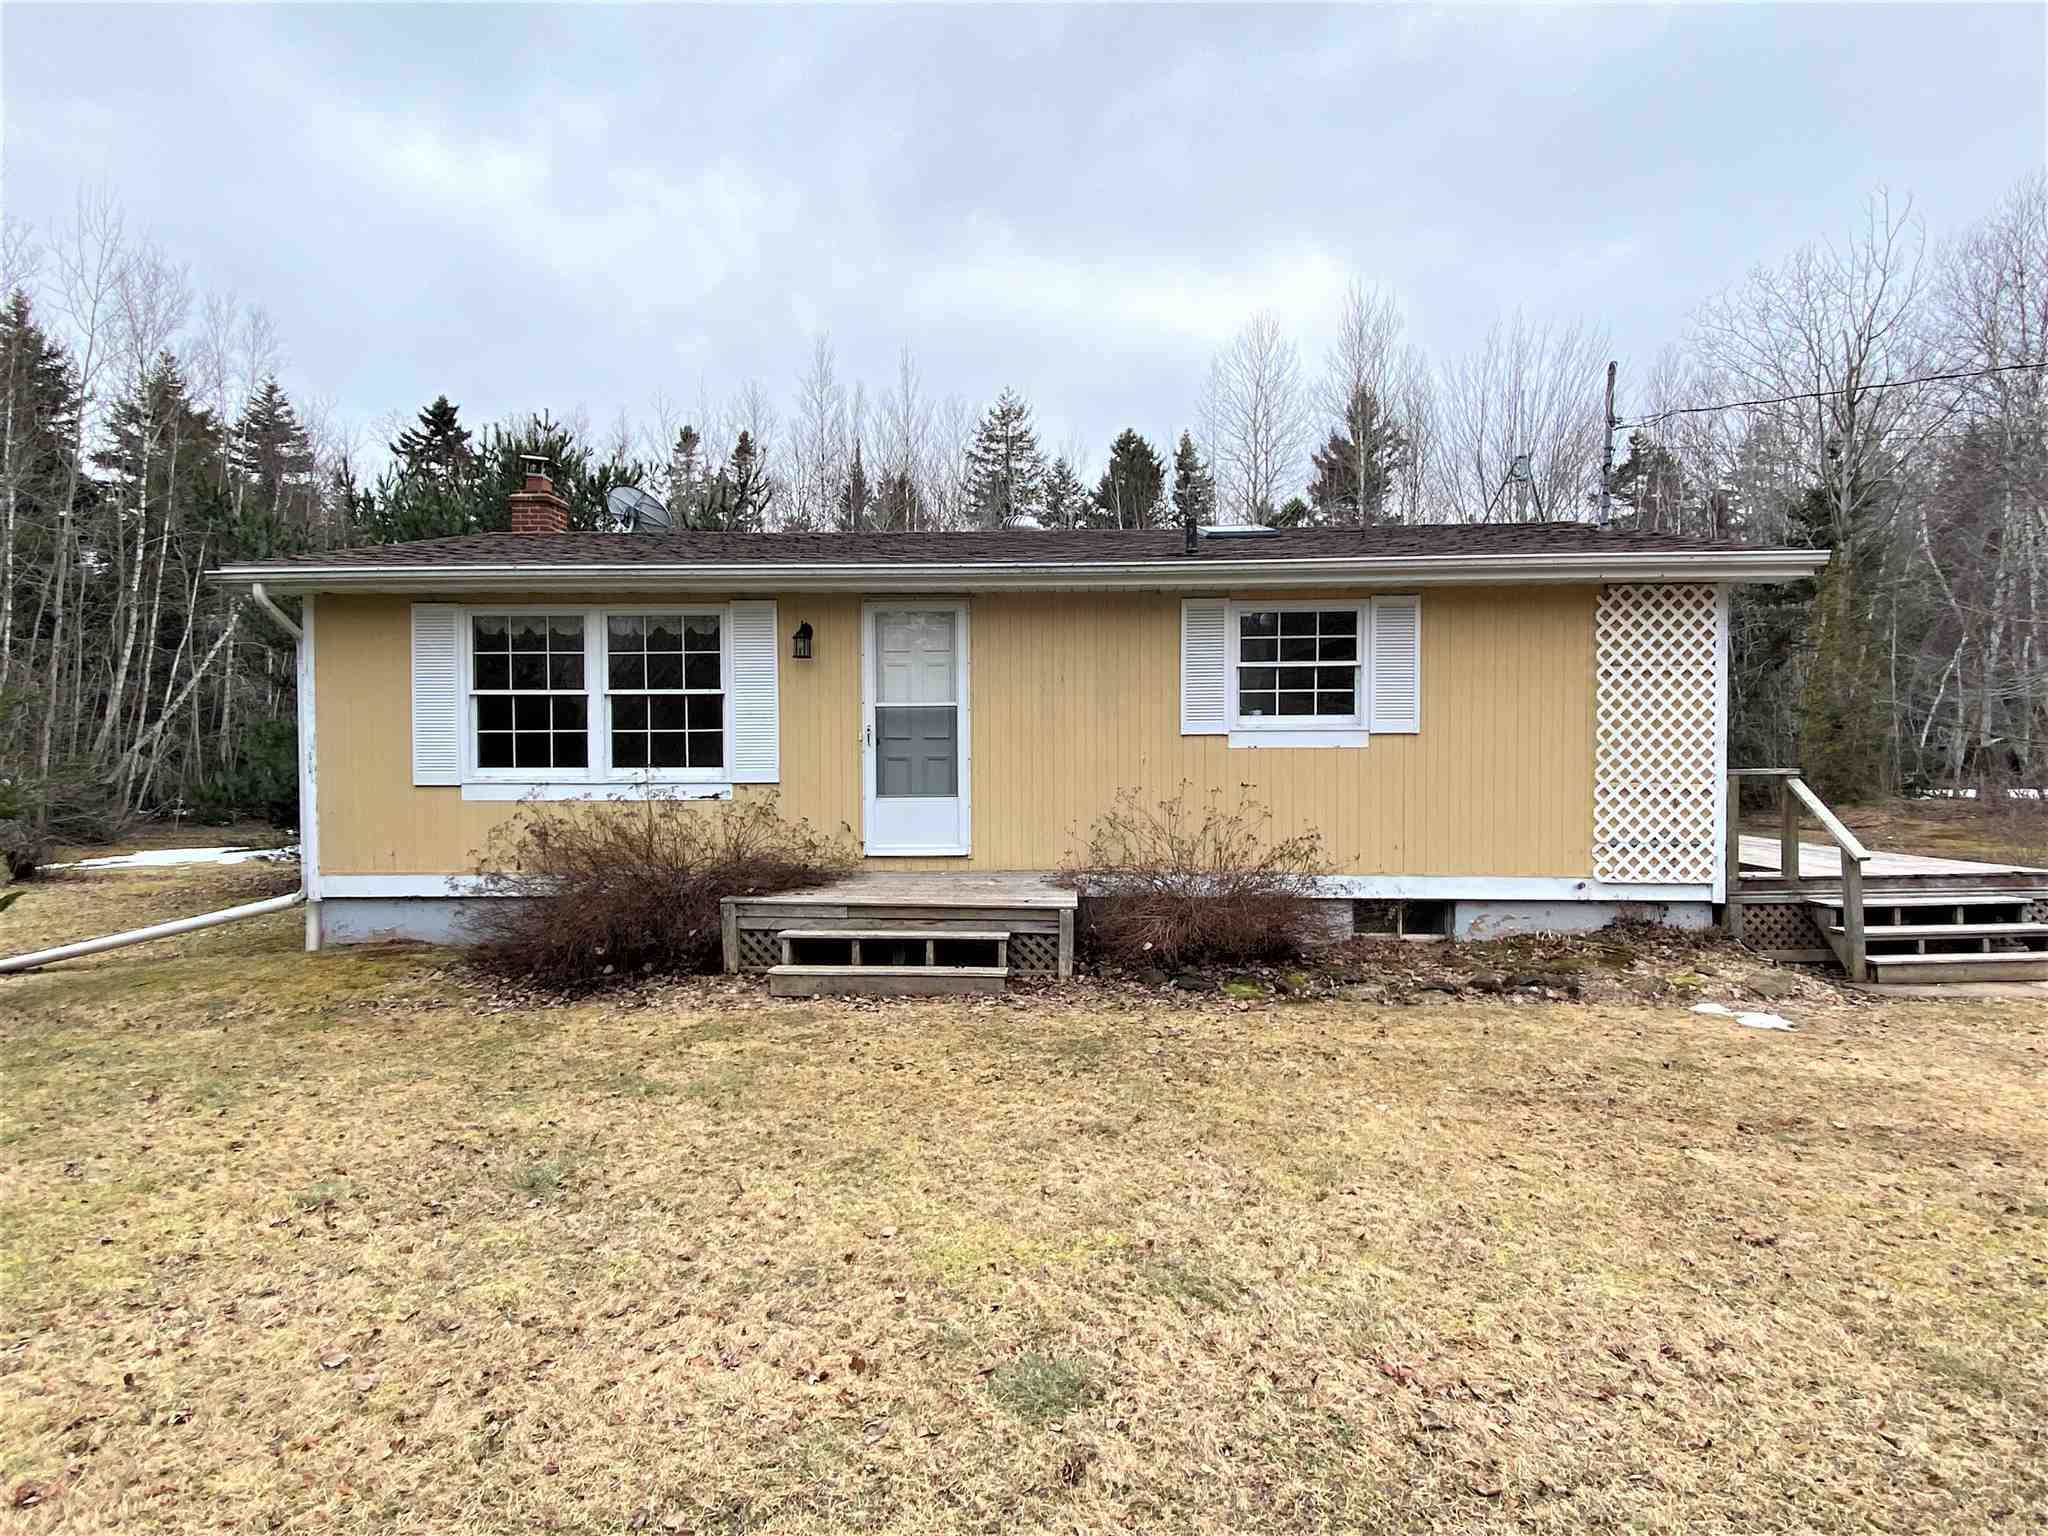 Main Photo: 7272 #6 Highway in Three Brooks: 108-Rural Pictou County Residential for sale (Northern Region)  : MLS®# 202106450